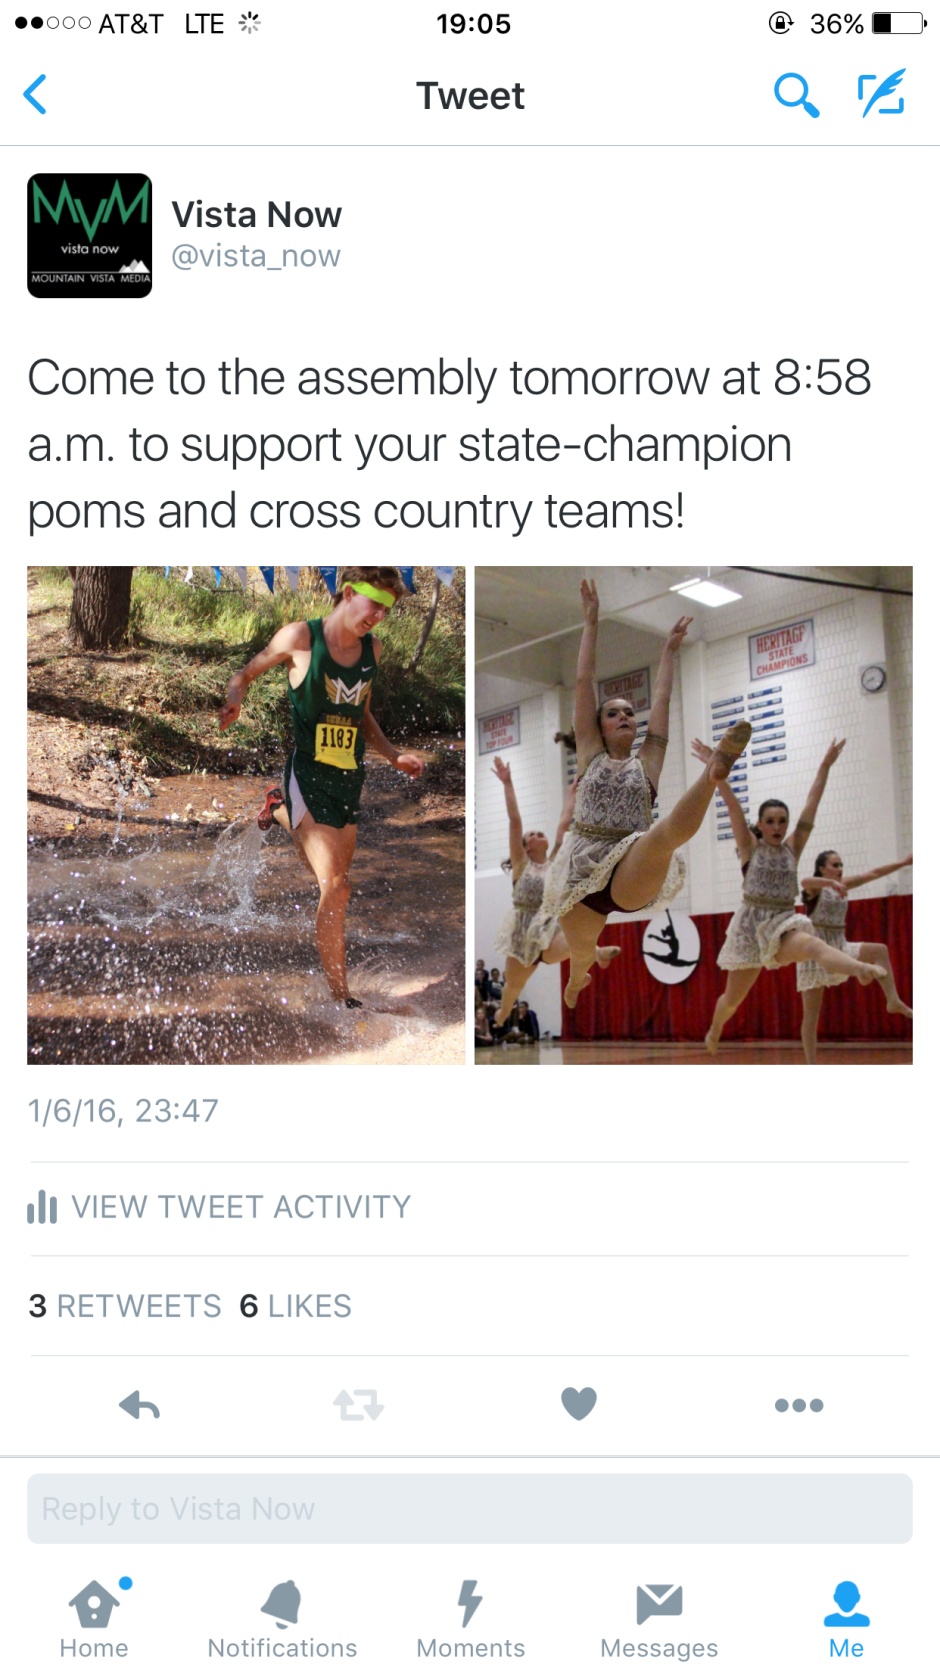 To get the final word out about the state championship assembly, this Tweet was sent out to the public with the time and basic info.